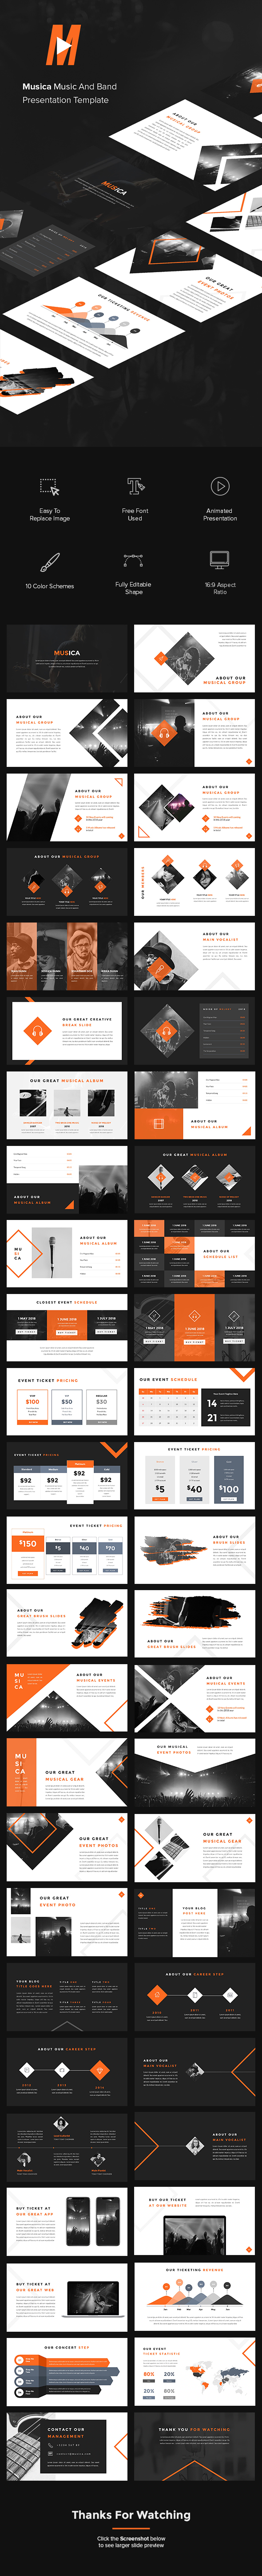 Musica - Music And Band PowerPoint Template - Miscellaneous PowerPoint Templates